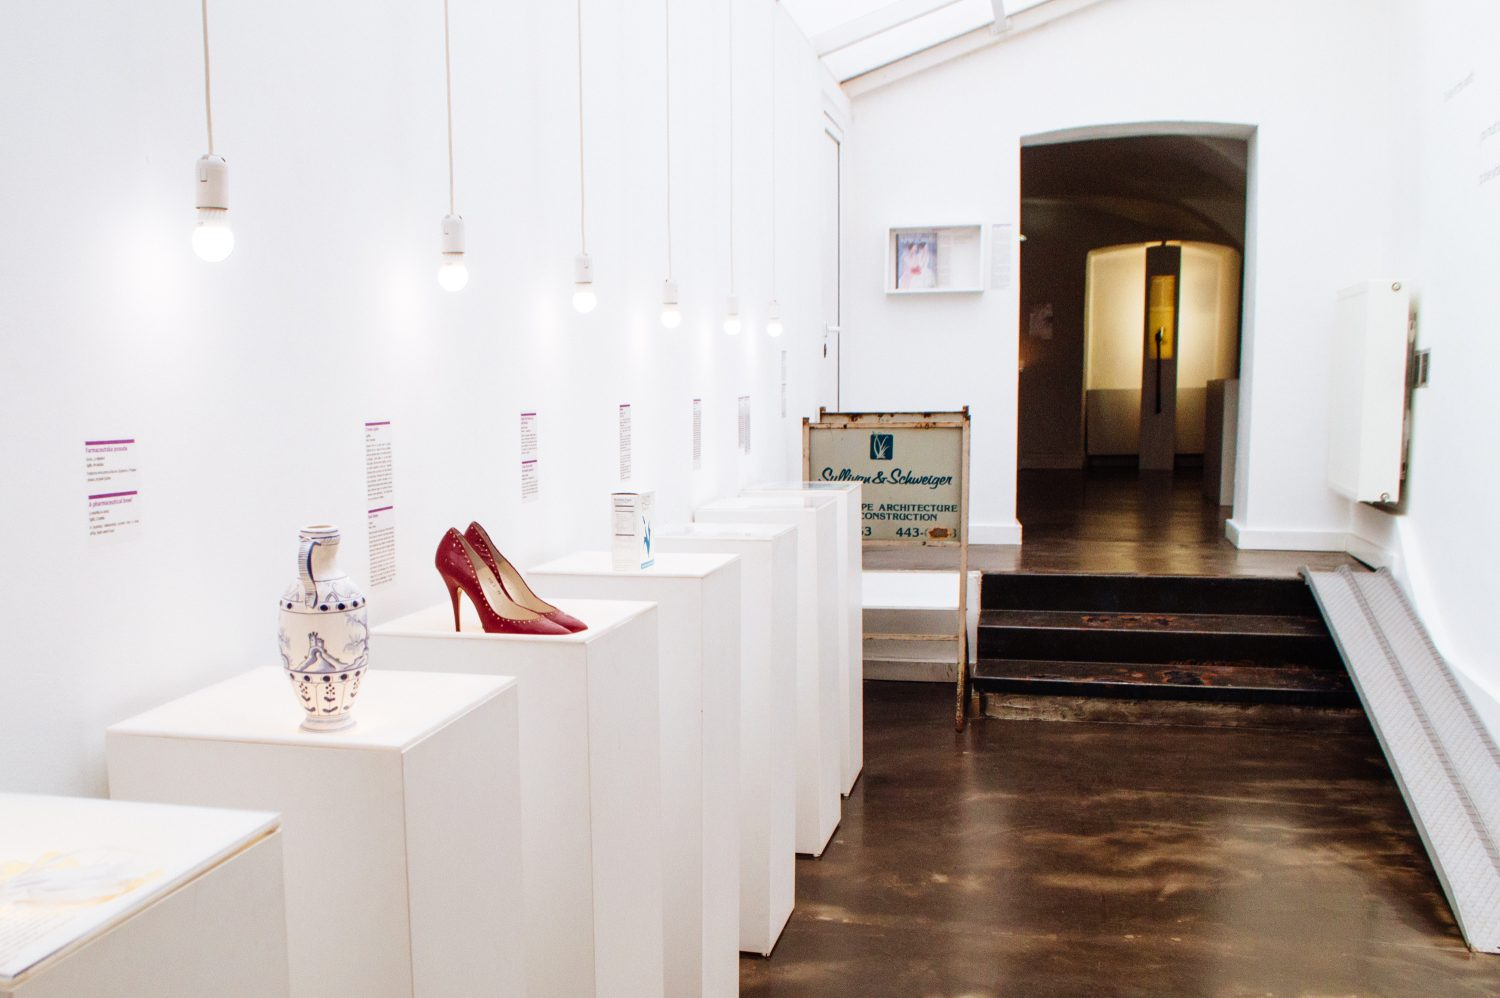 Items on display at the Museum of Broken Relationships in Zagreb, Croatia